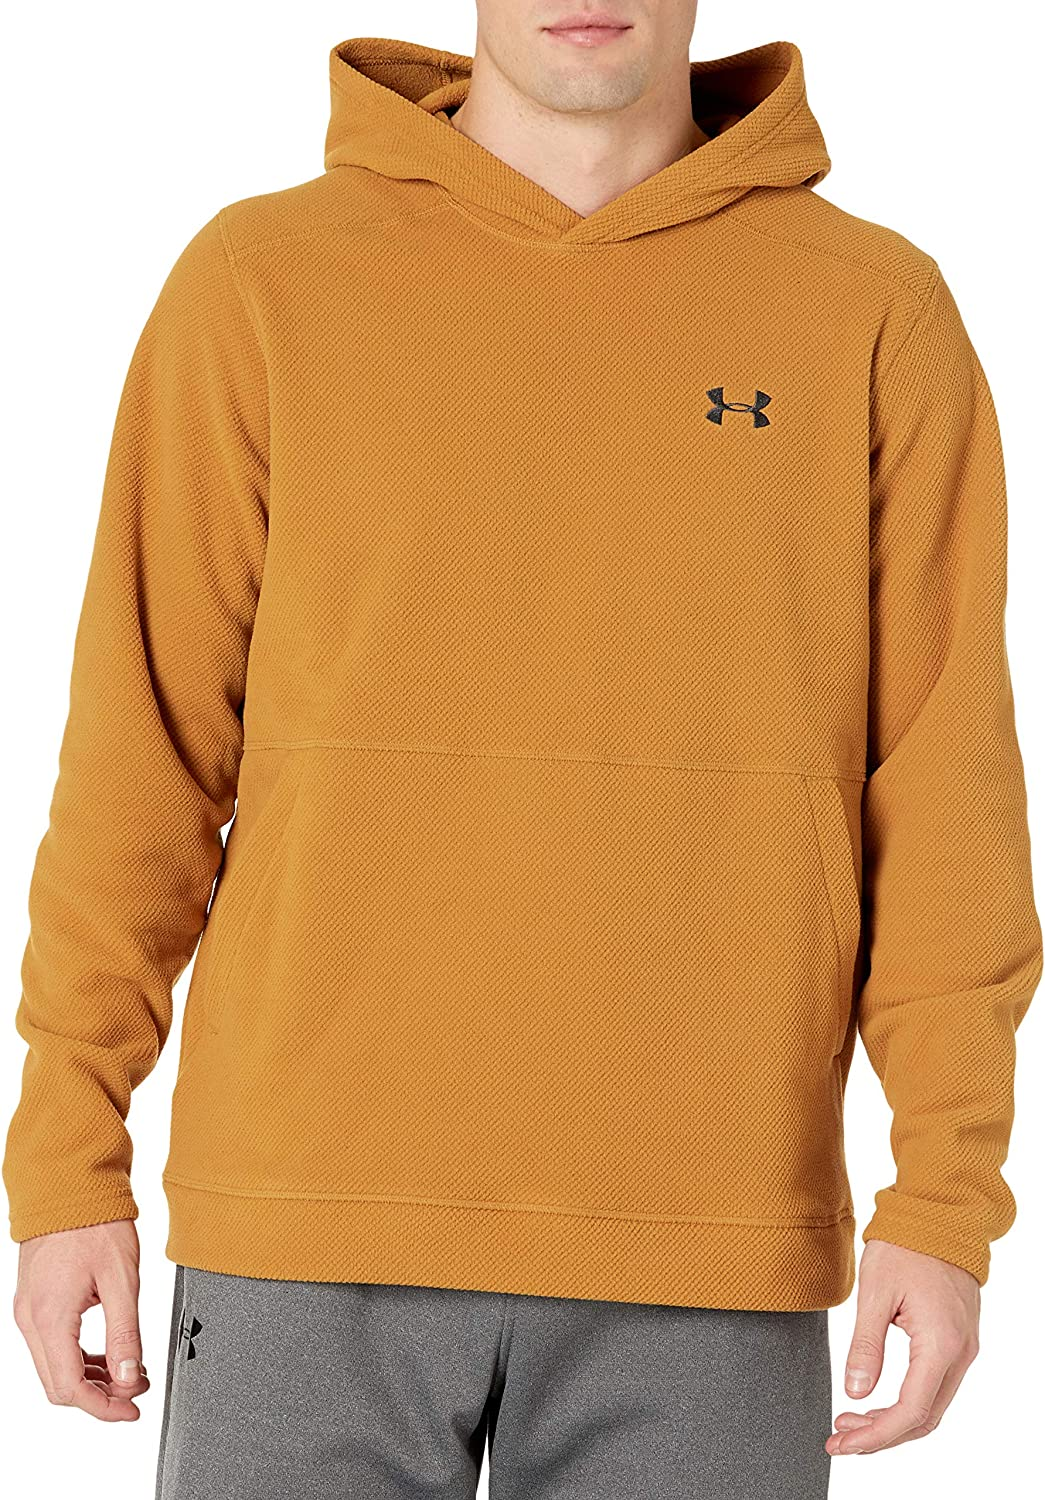 Under Armour Men's Fleece Offgrid Max 76% OFF All items free shipping Hoodie